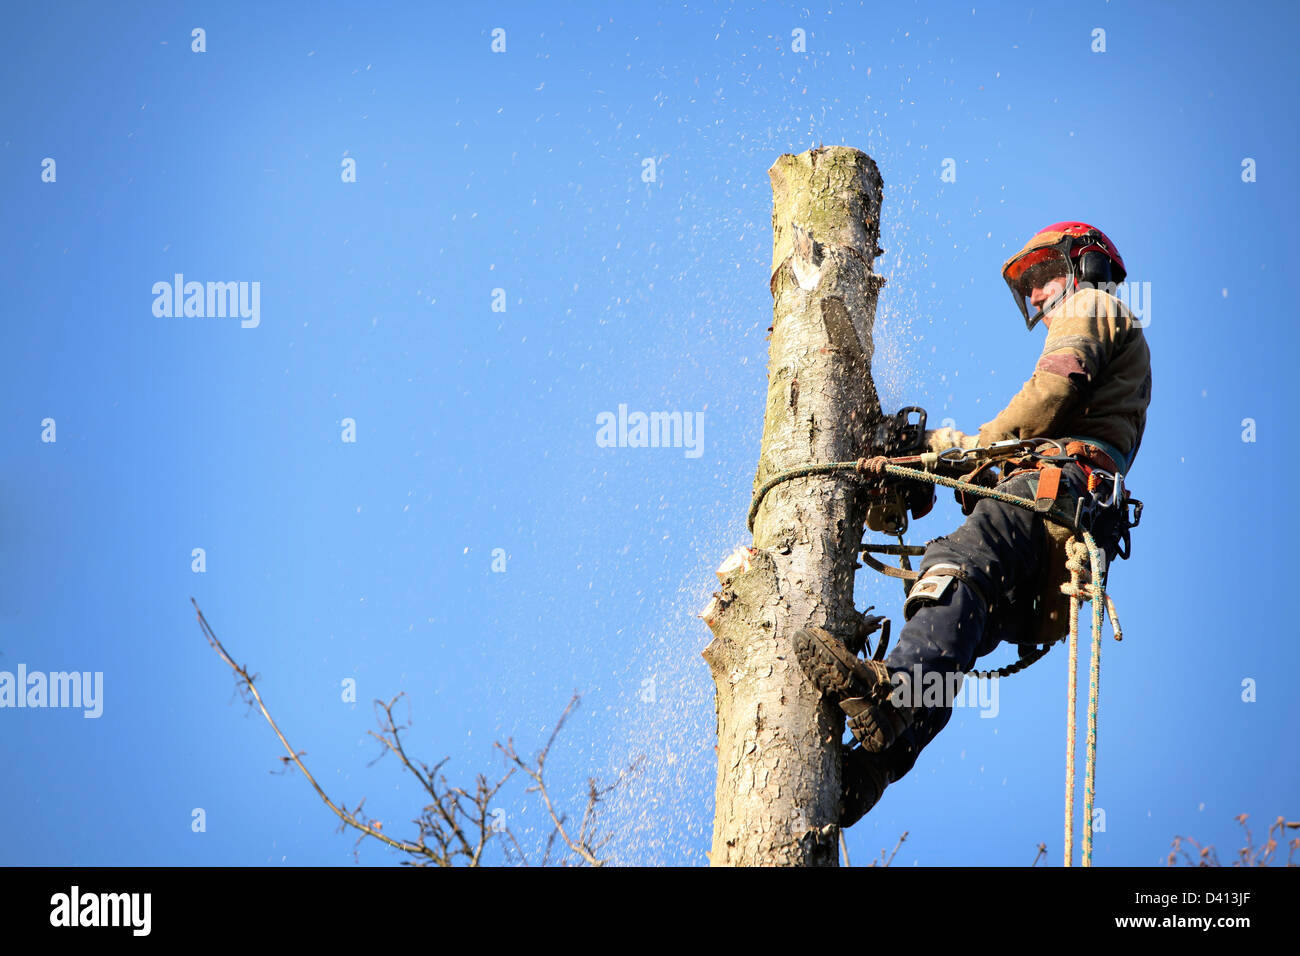 An arborist cutting a tree with a chainsaw - Stock Image